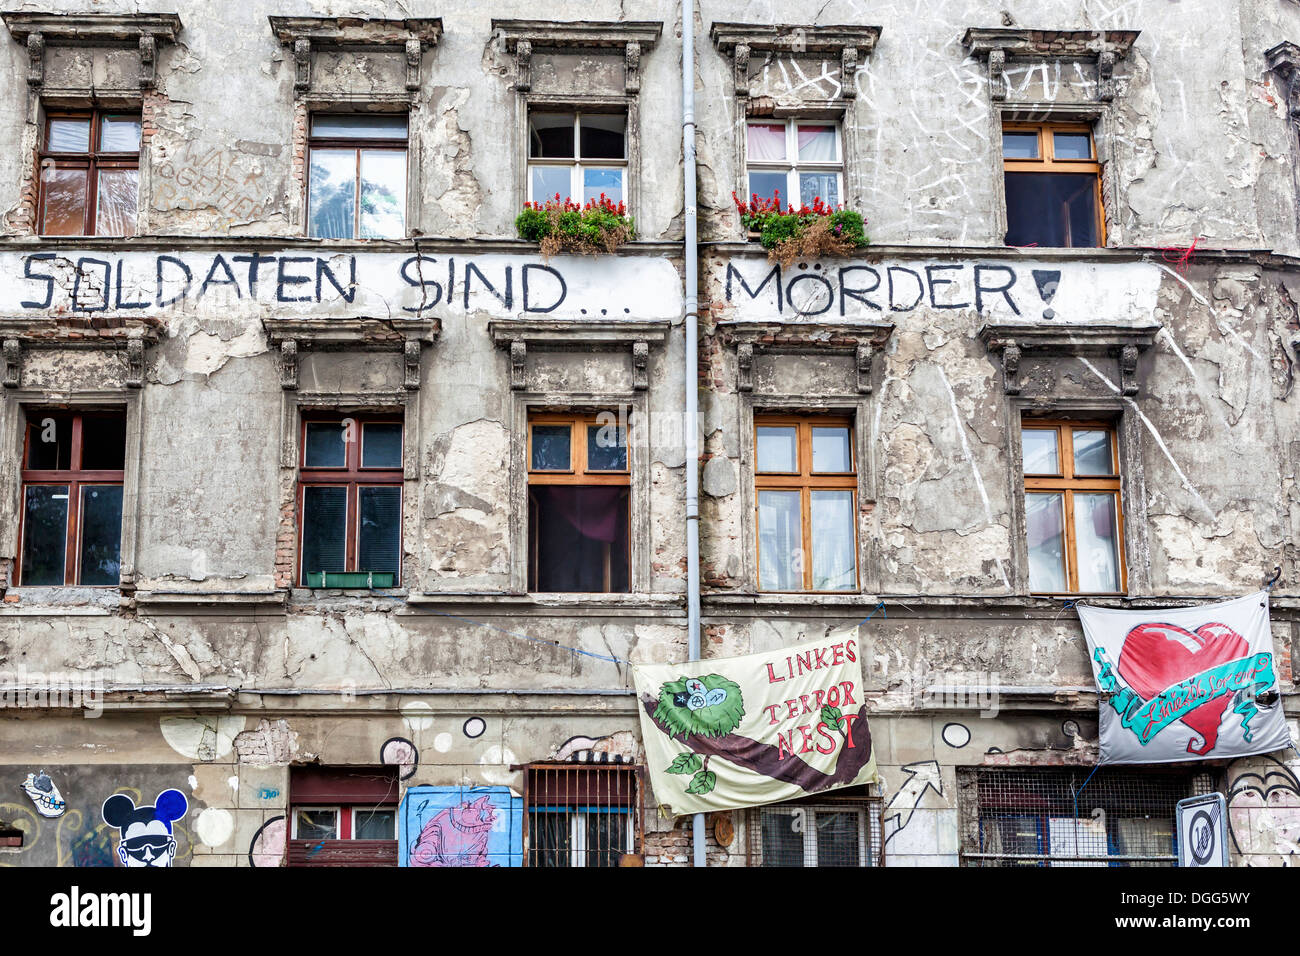 Exterior of derelict building covered in graffiti, stickers and posters occupied by squatters - Mitte Berlin - Stock Image